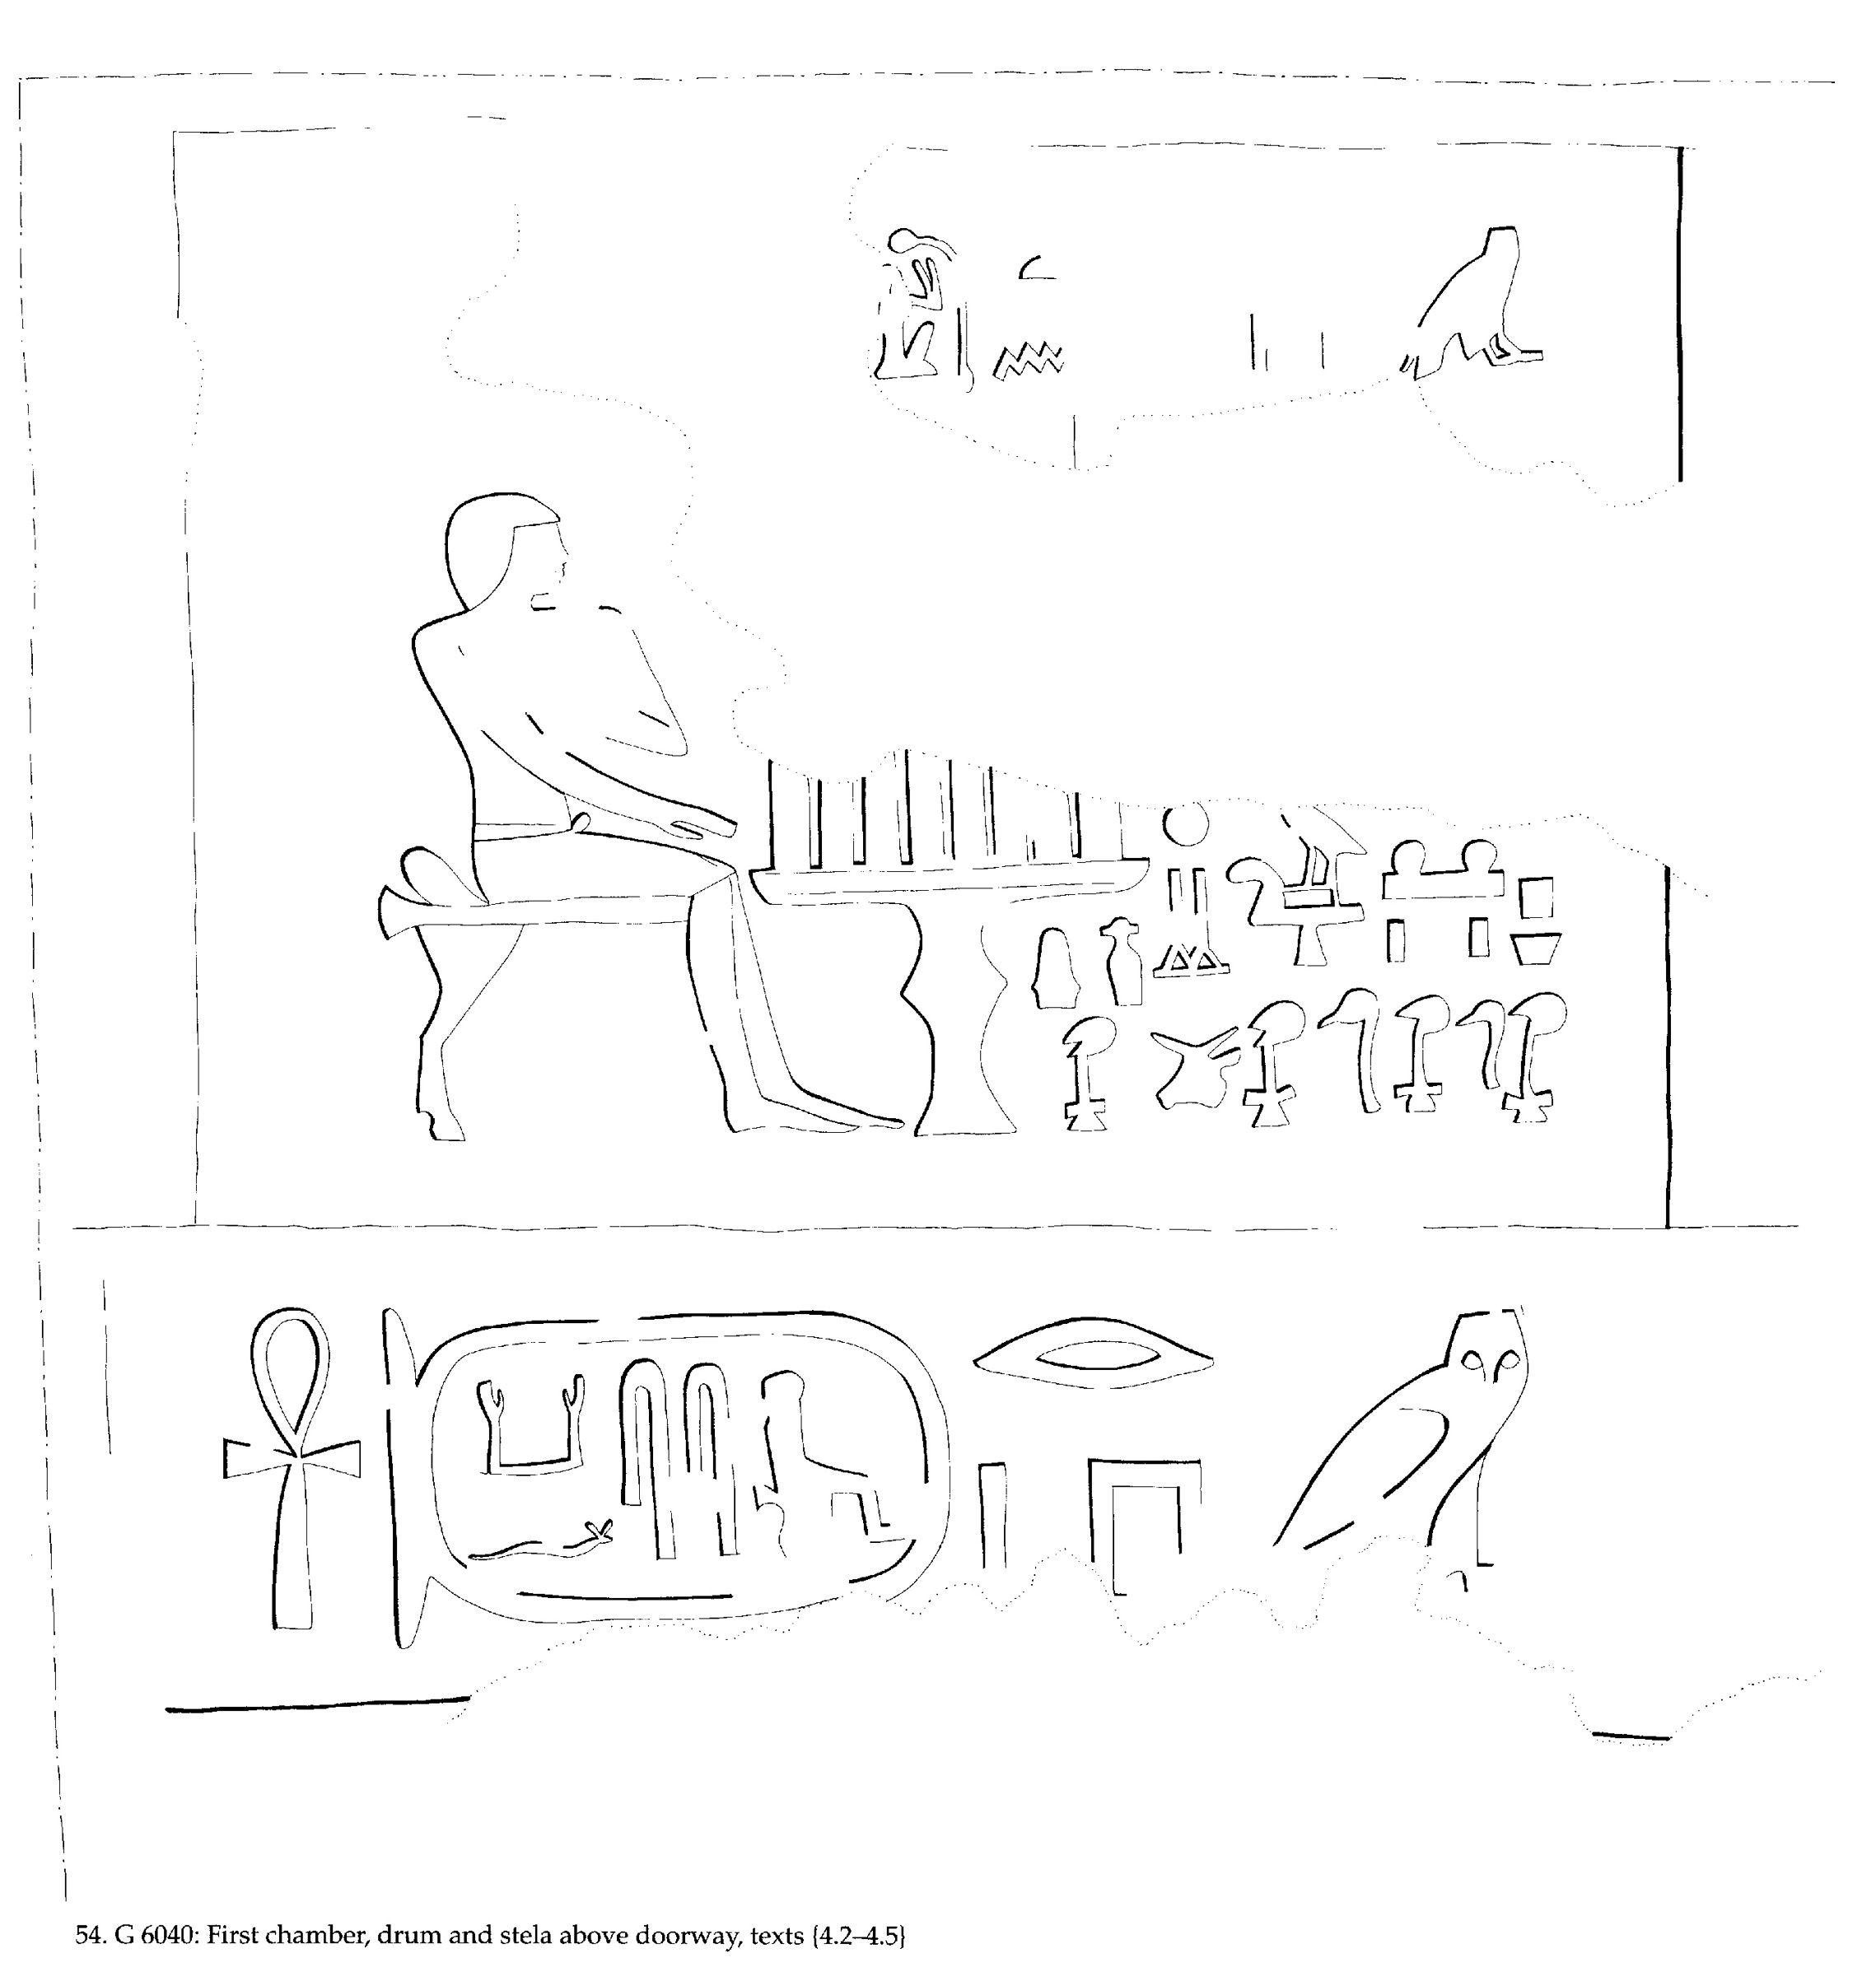 Drawings: G 6040: relief from first chamber doorway, drum and stela